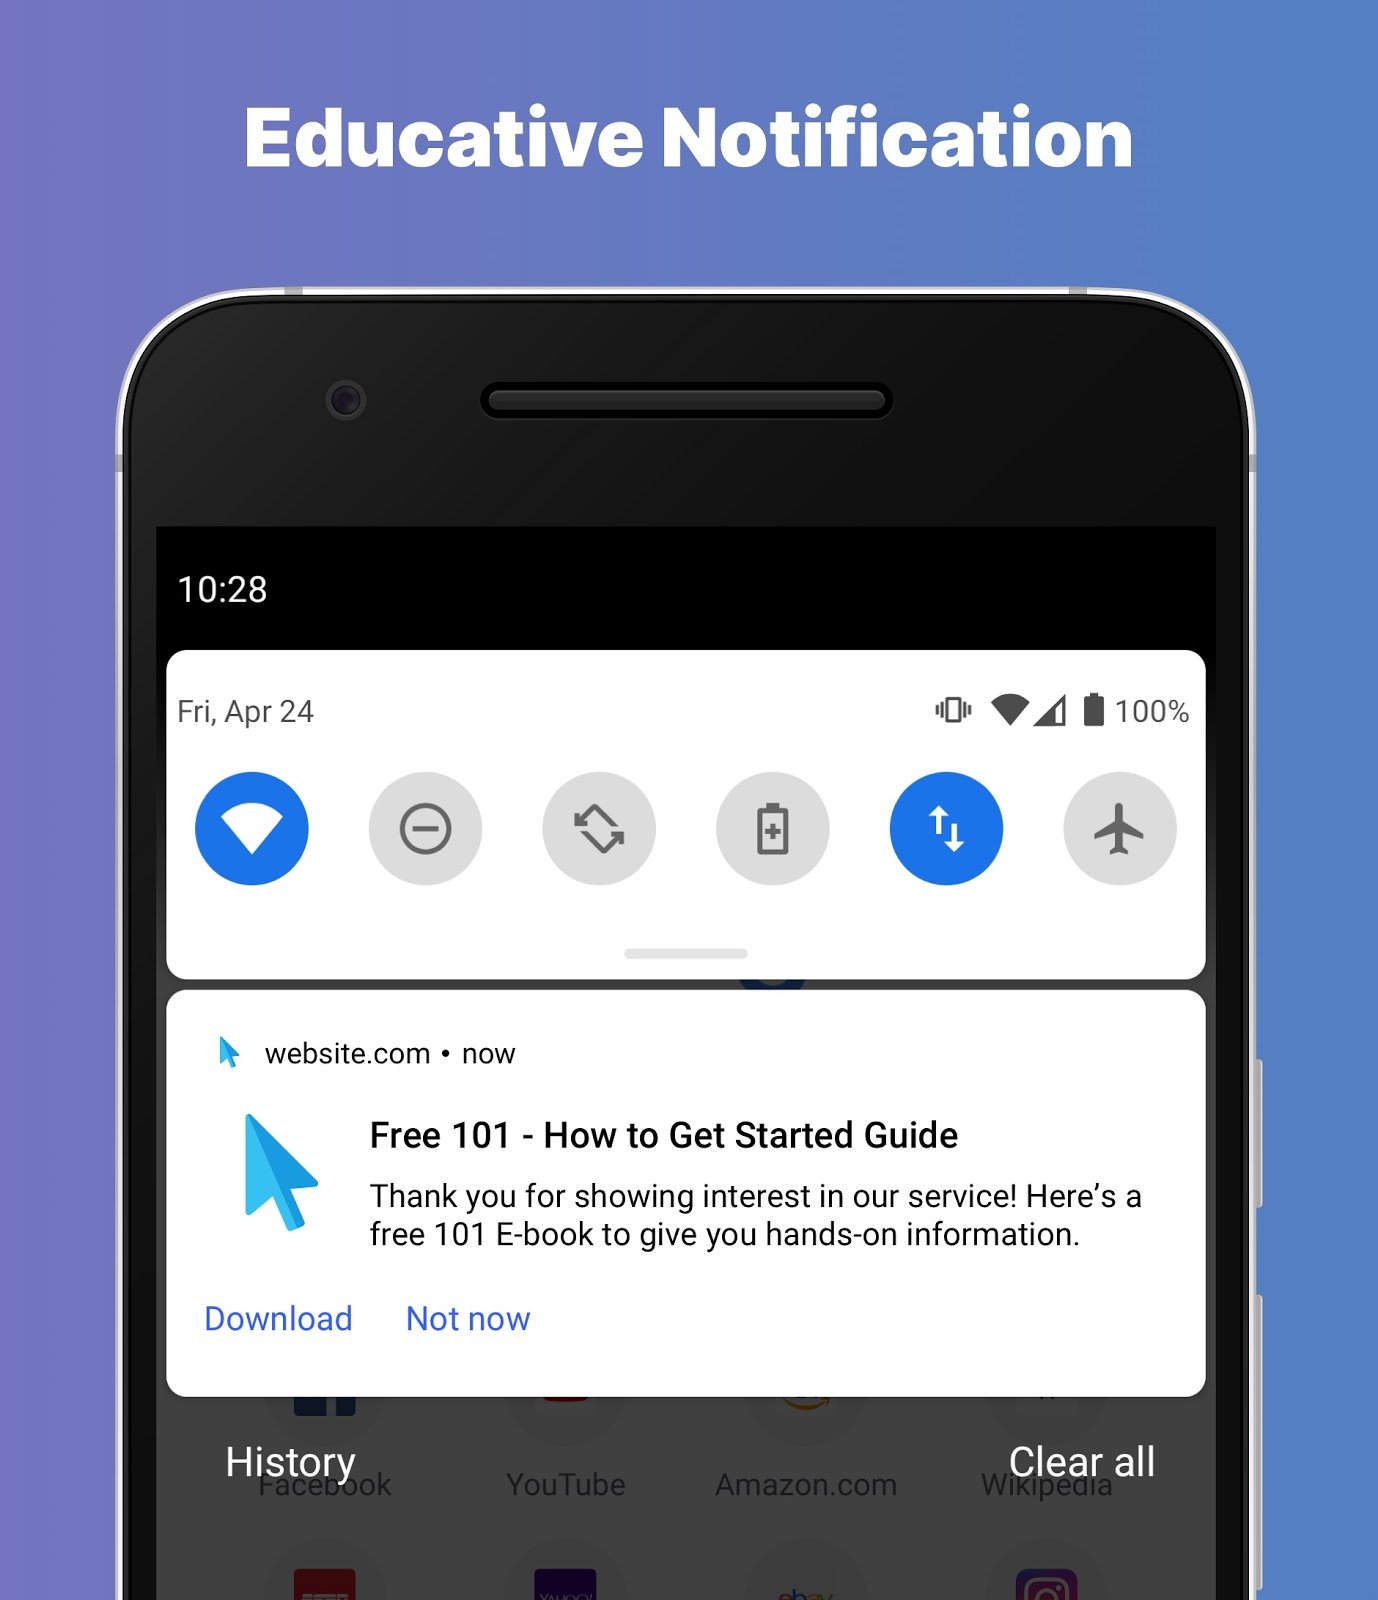 Example of a educative push notification